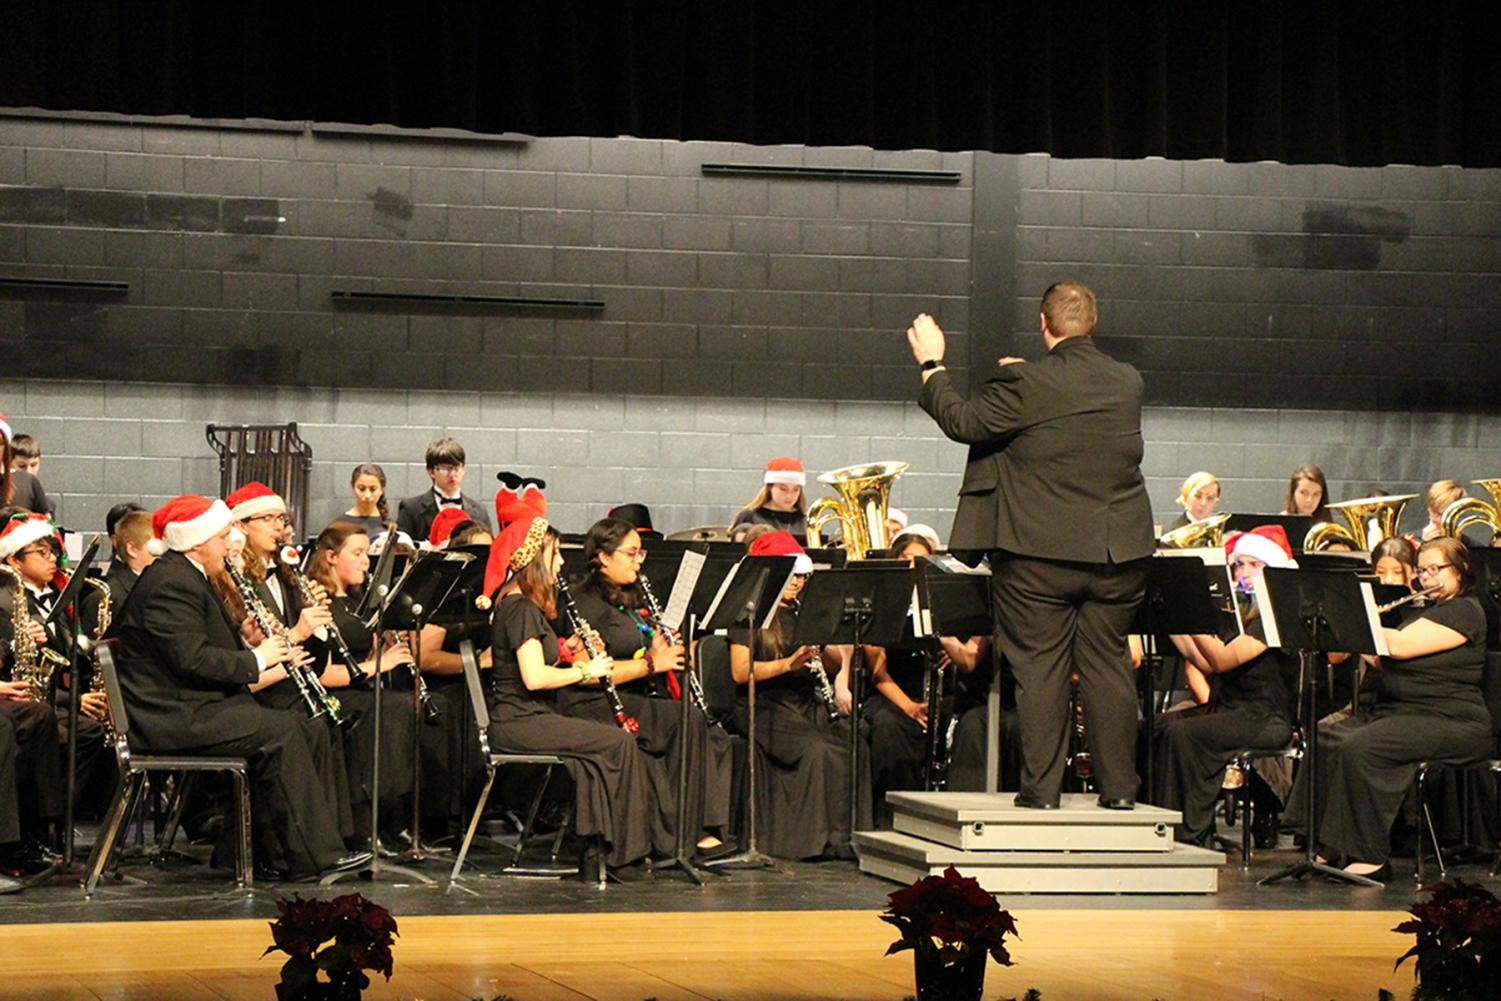 Student aid director, Marc Smith, conducts the Symphonic band ensemble in a medley of John William's Home Alone soundtrack.